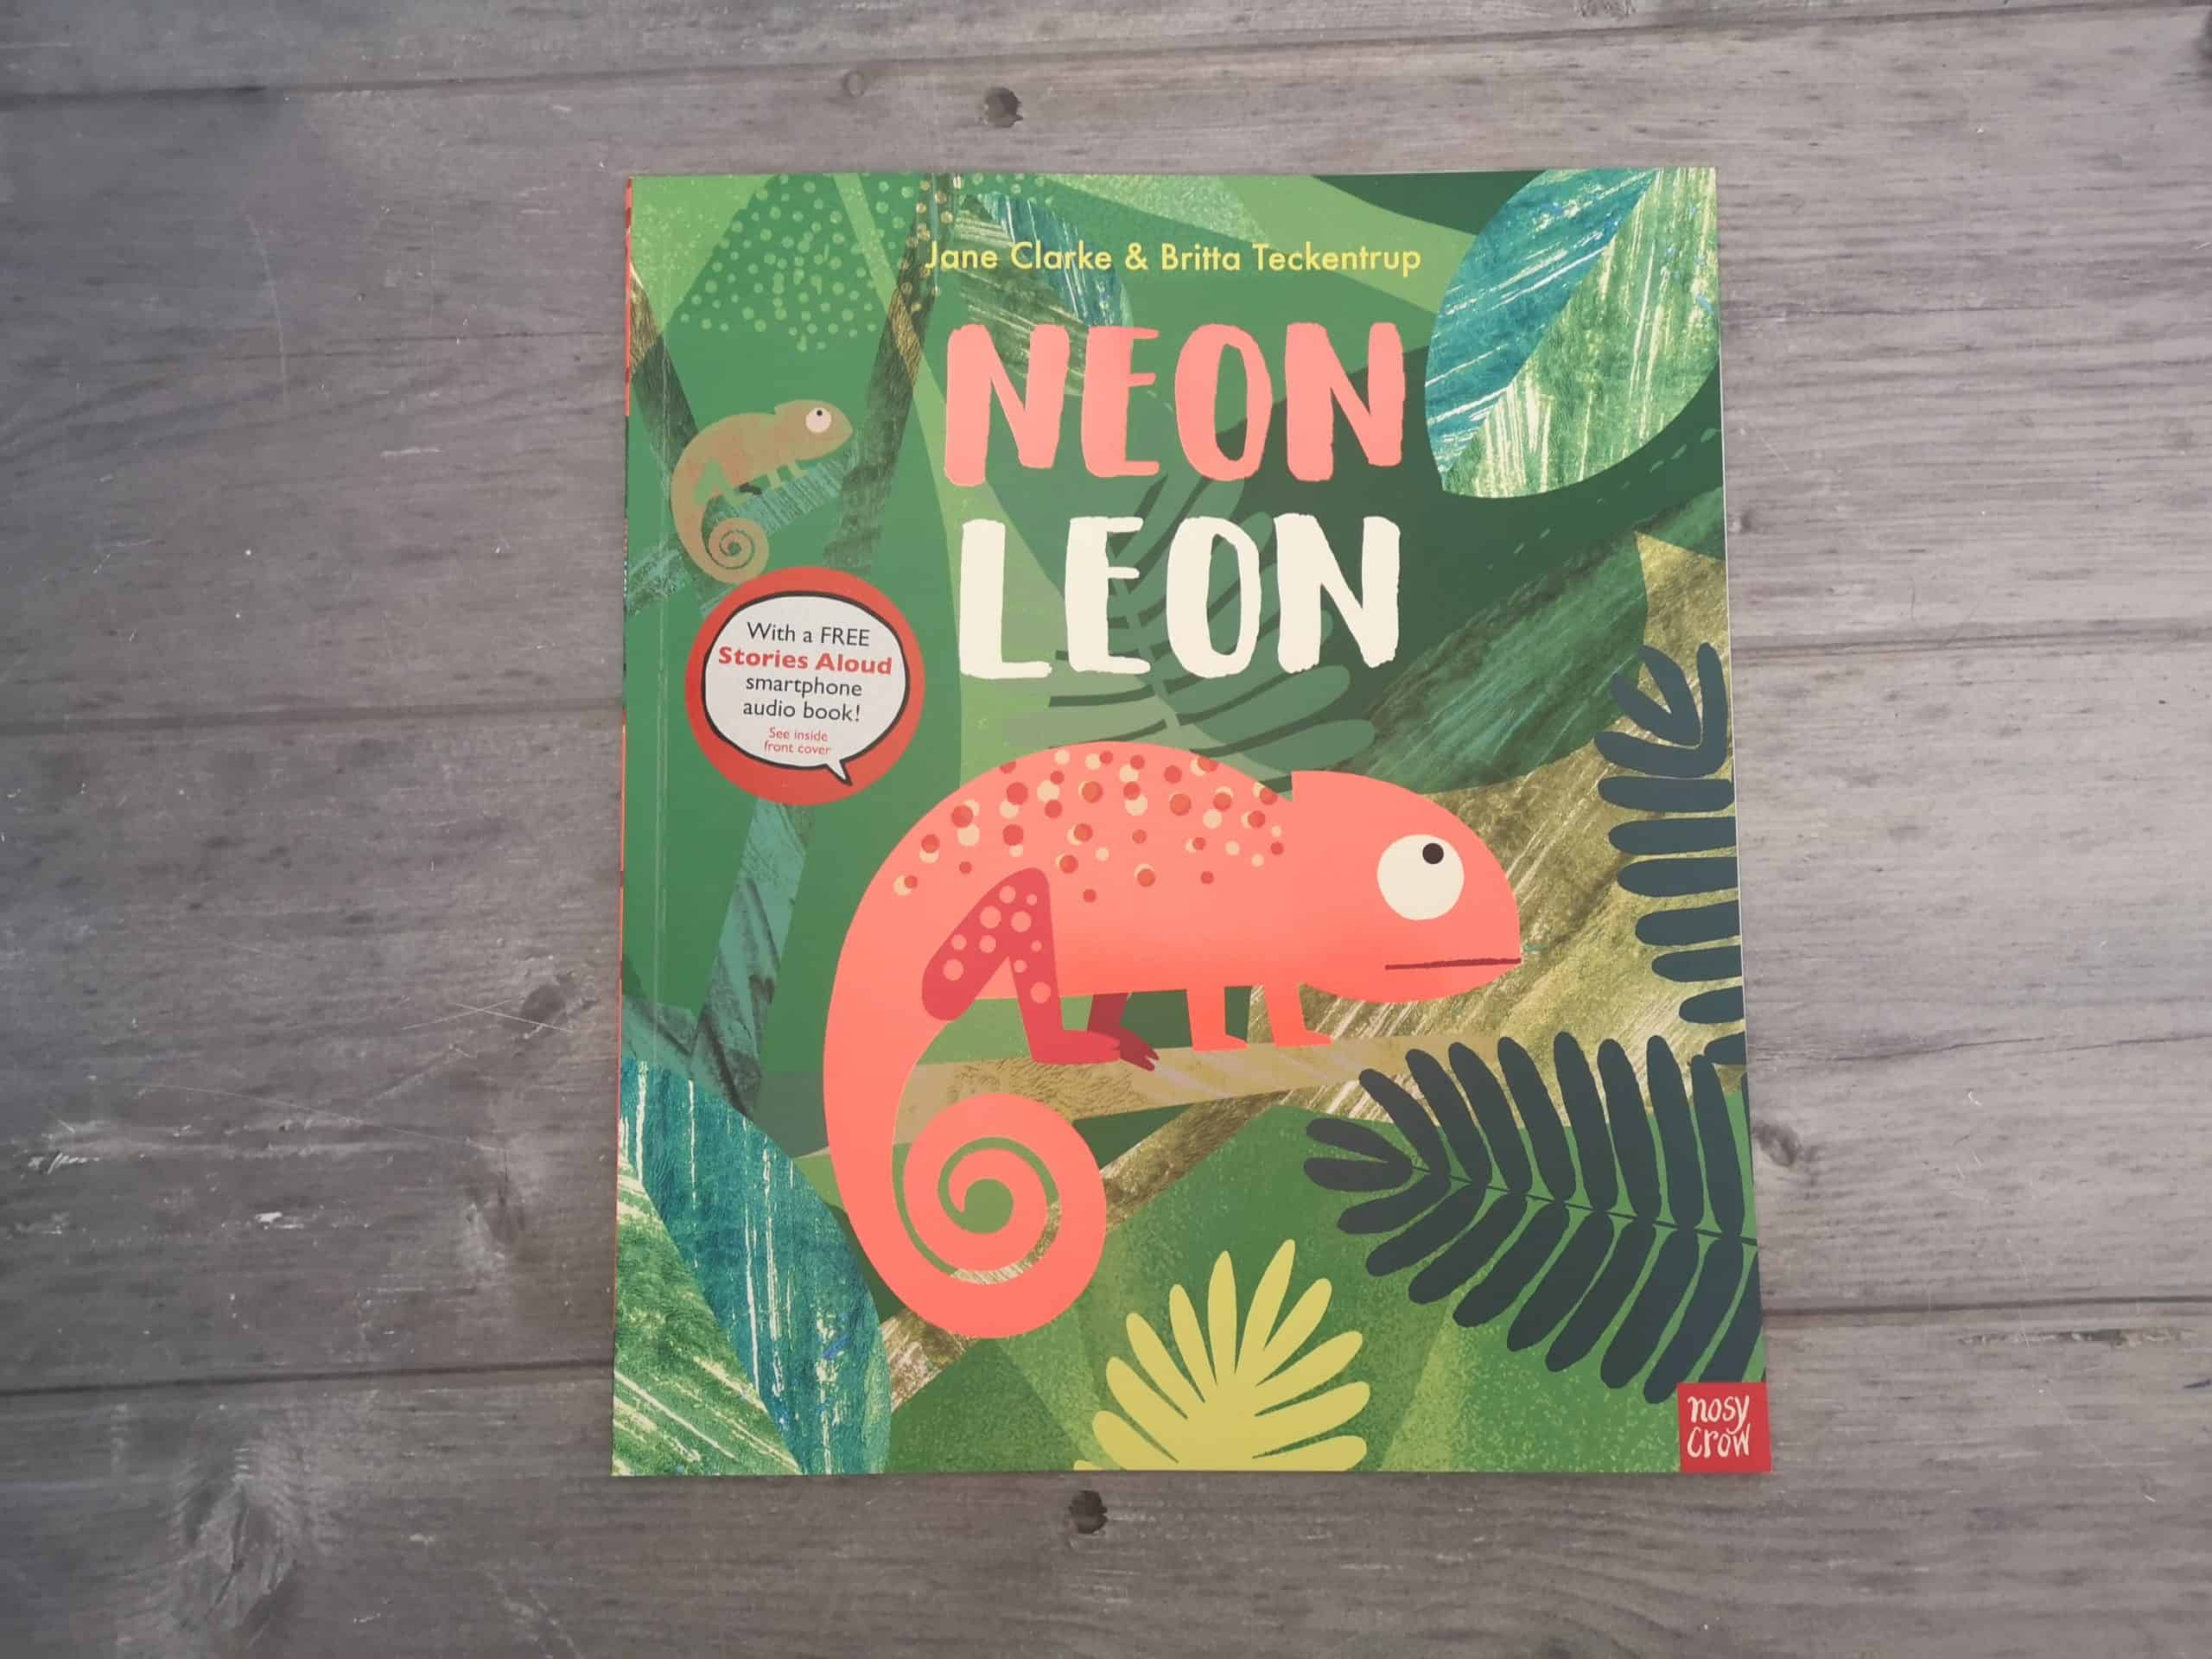 Neon Leon from by Jane Clarke and Britta Teckentrup